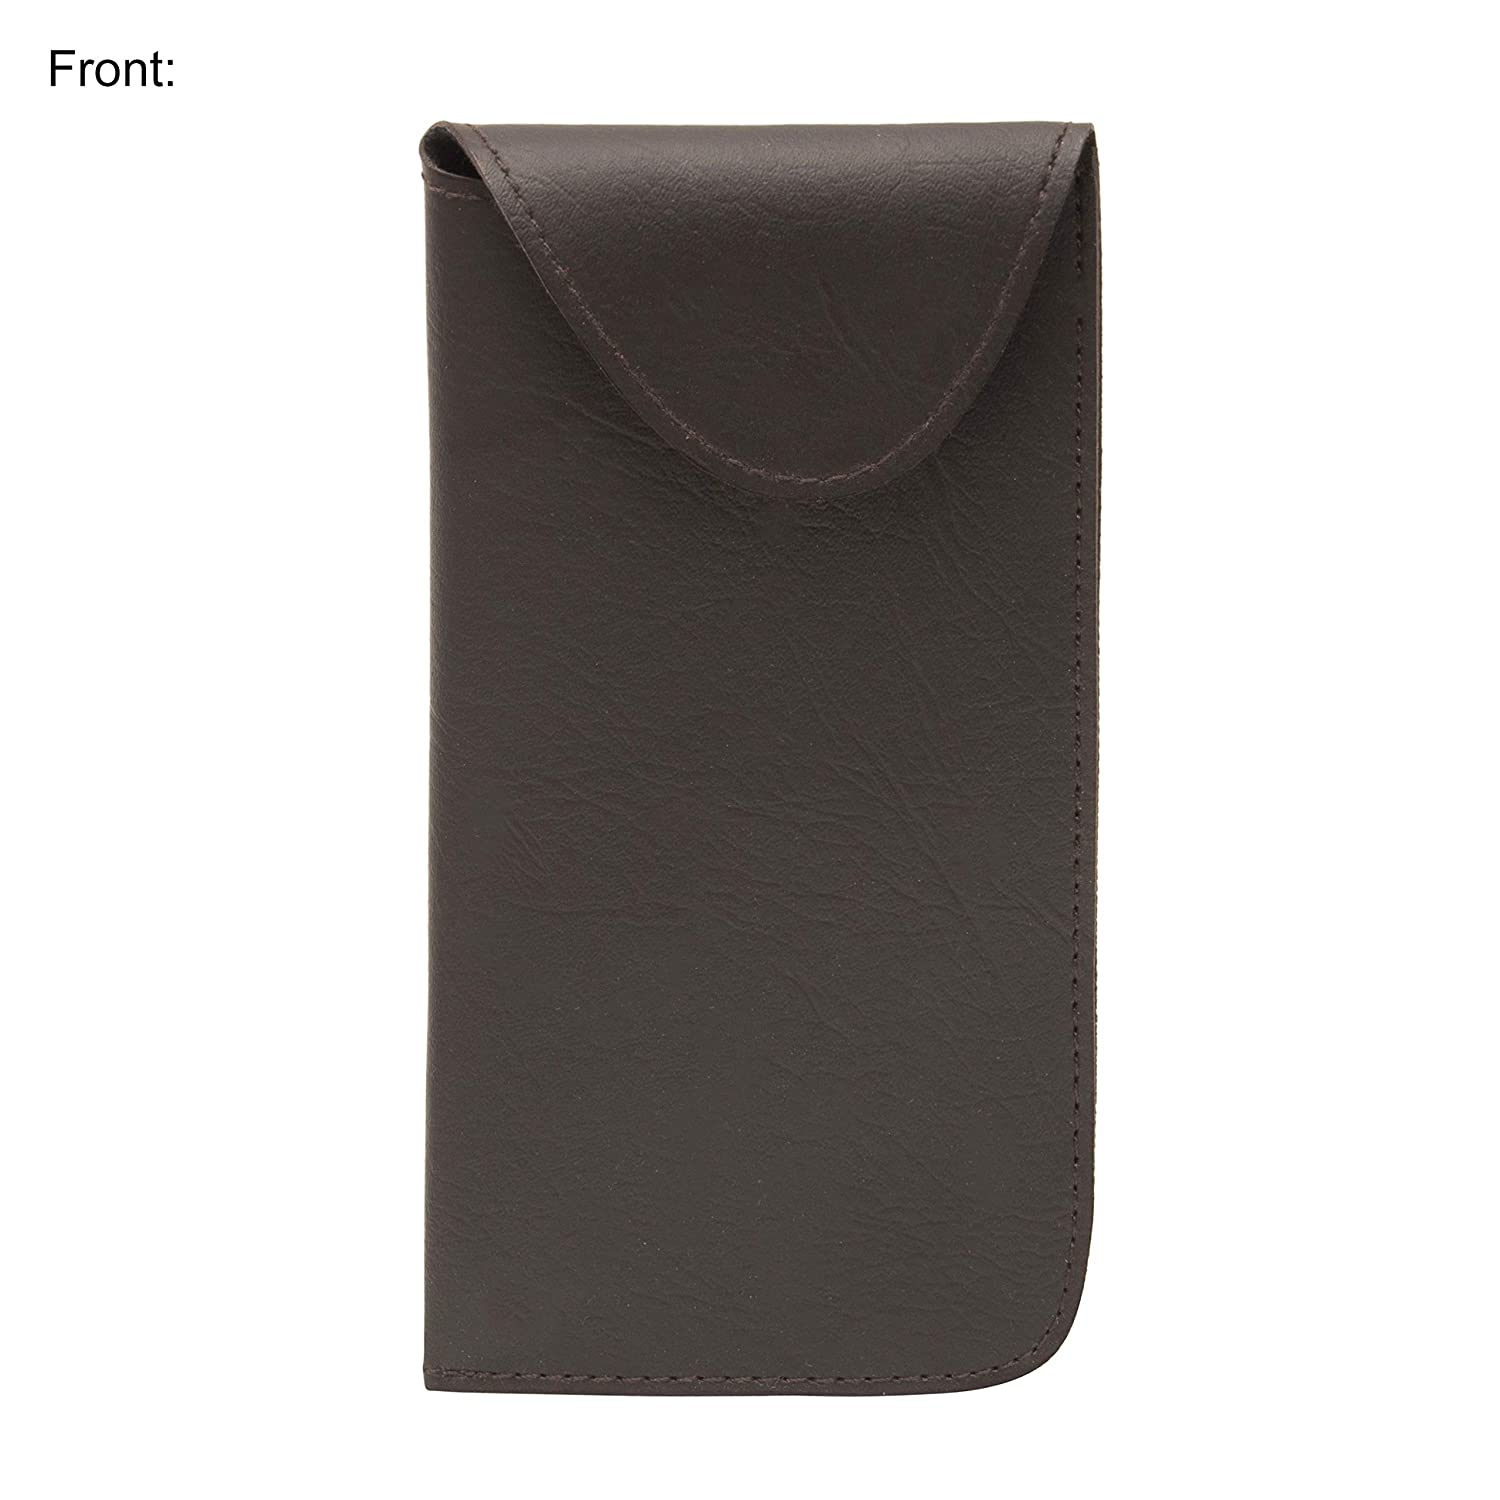 1 Pack, Brown Protects Eyewear from Damages Slip In Glasses Case Sleeve with Pocket Clip